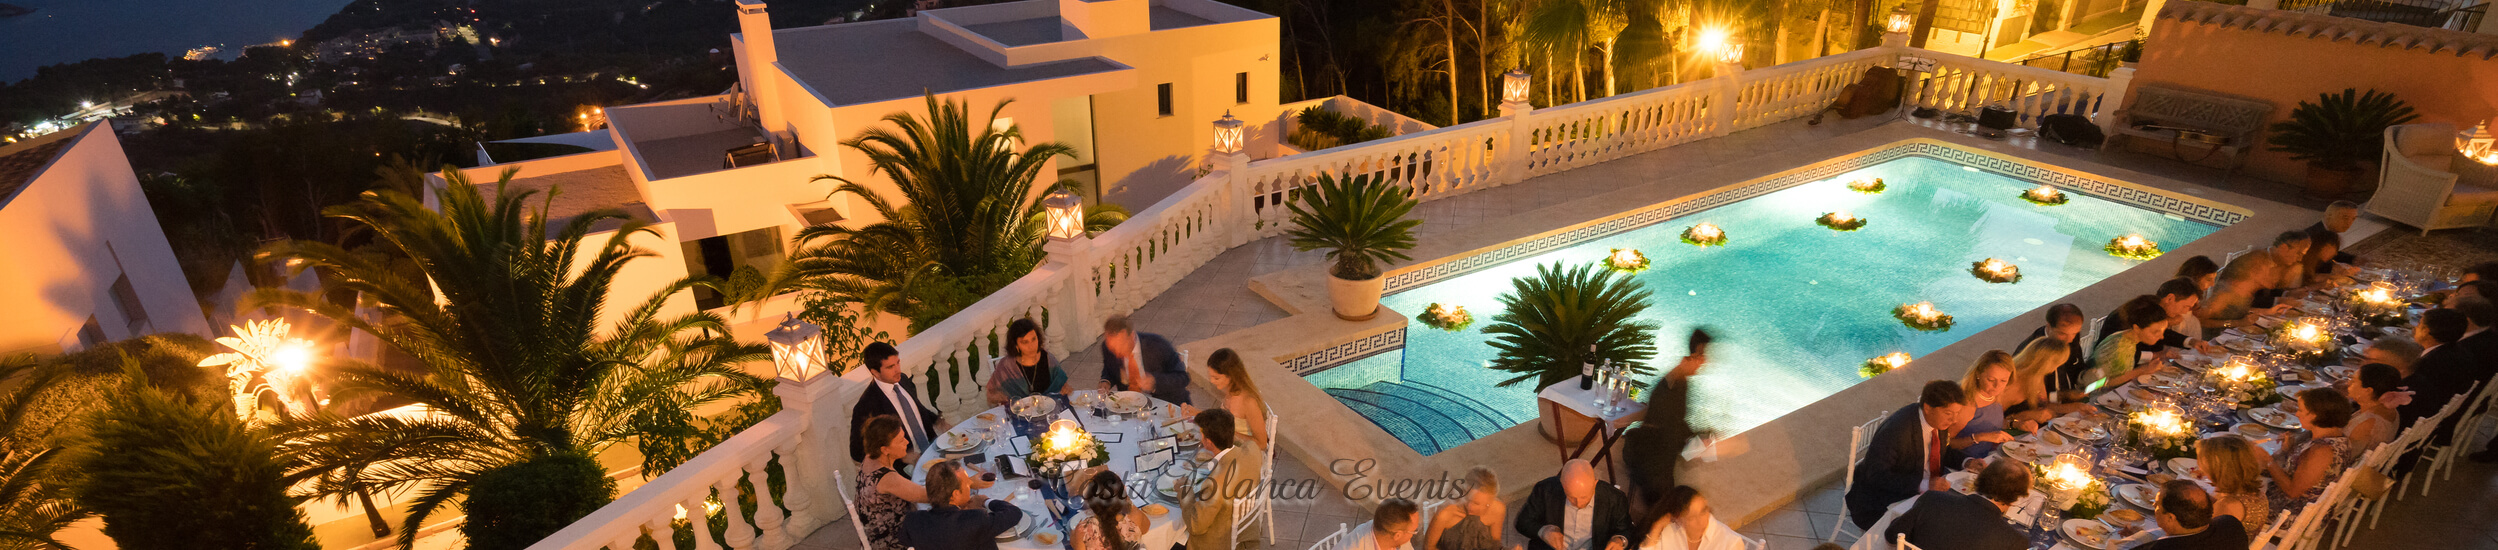 Bird view of a wedding in a private villa in Spain